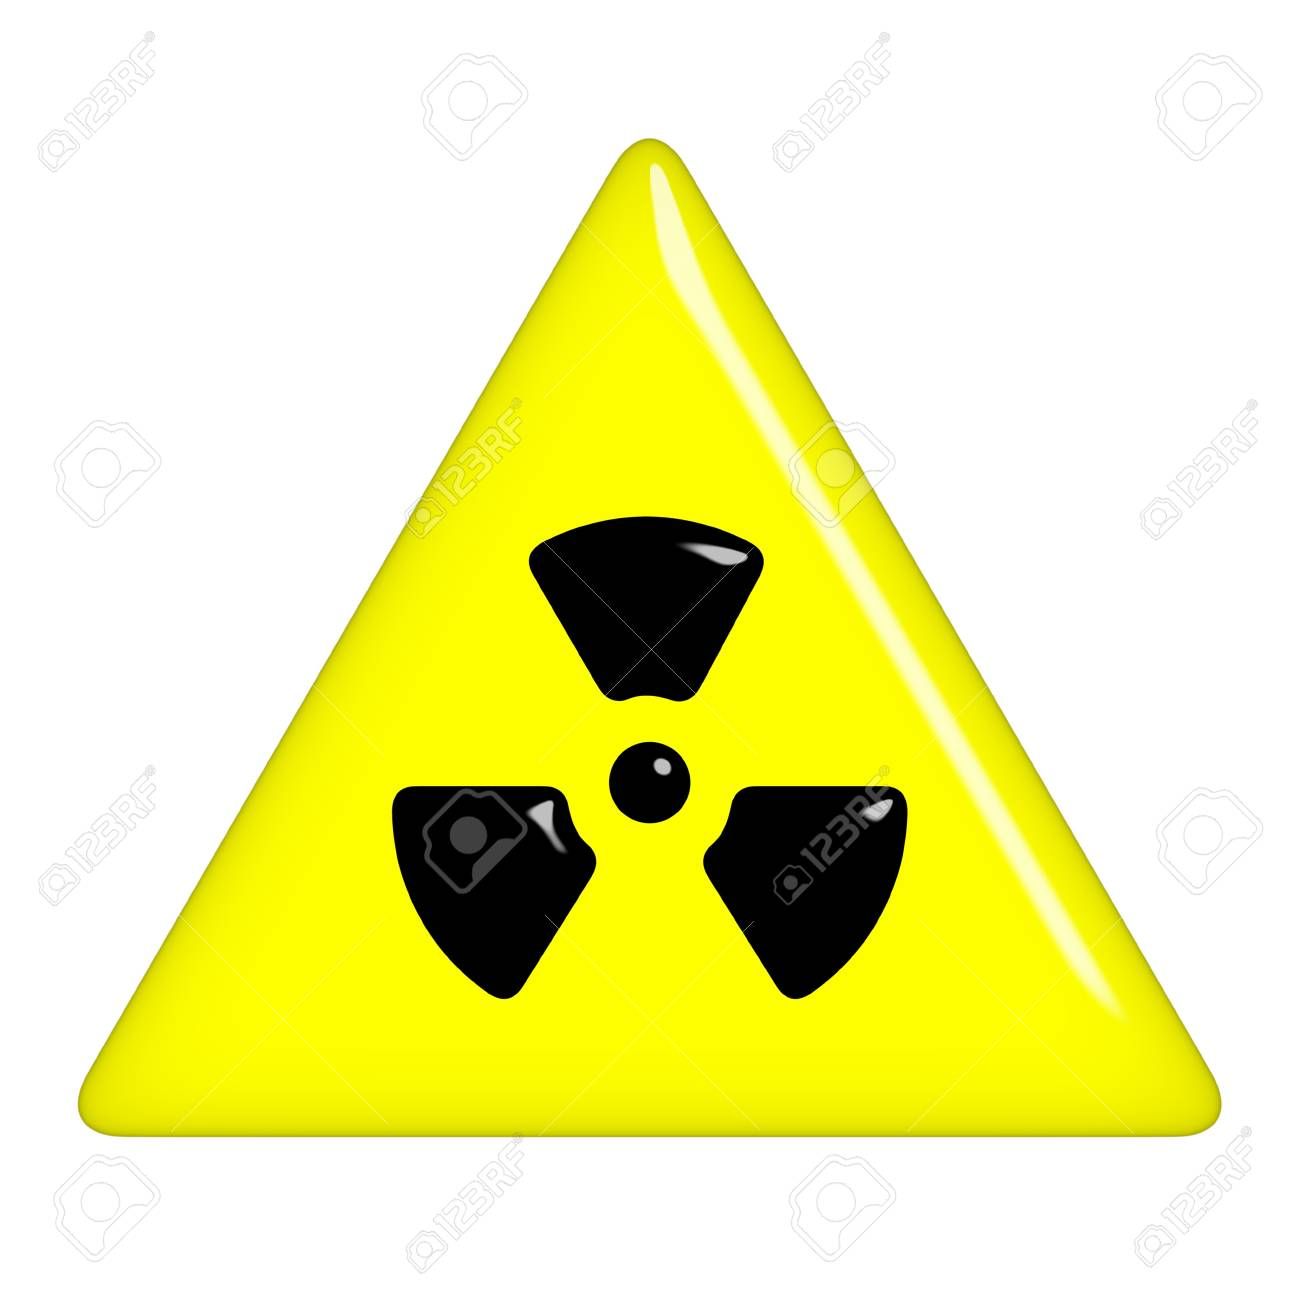 3d radioactive symbol Stock Photo - 7352793